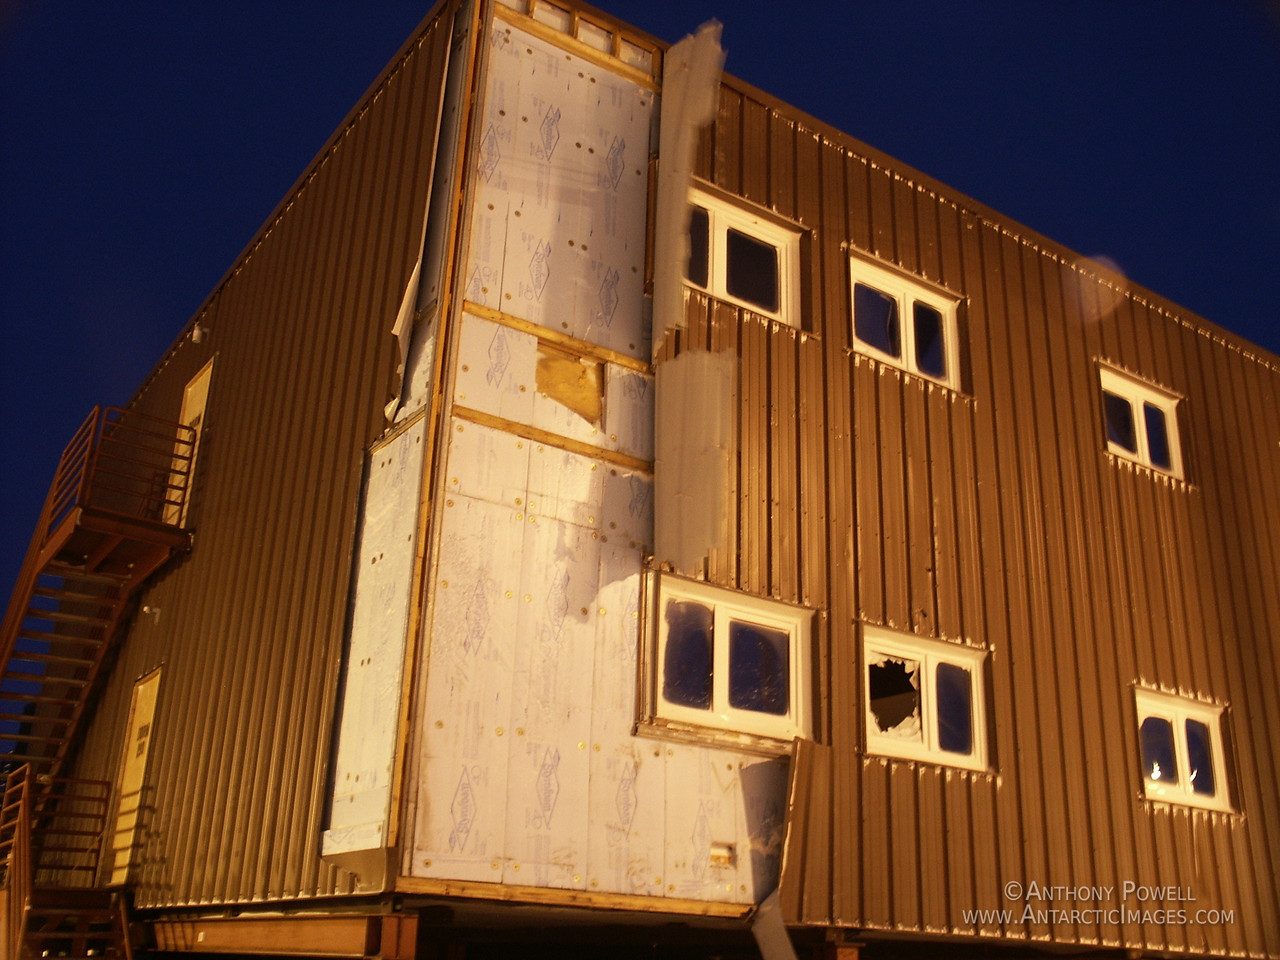 Storm damage to one of the dormitory buildings at McMurdo Station.